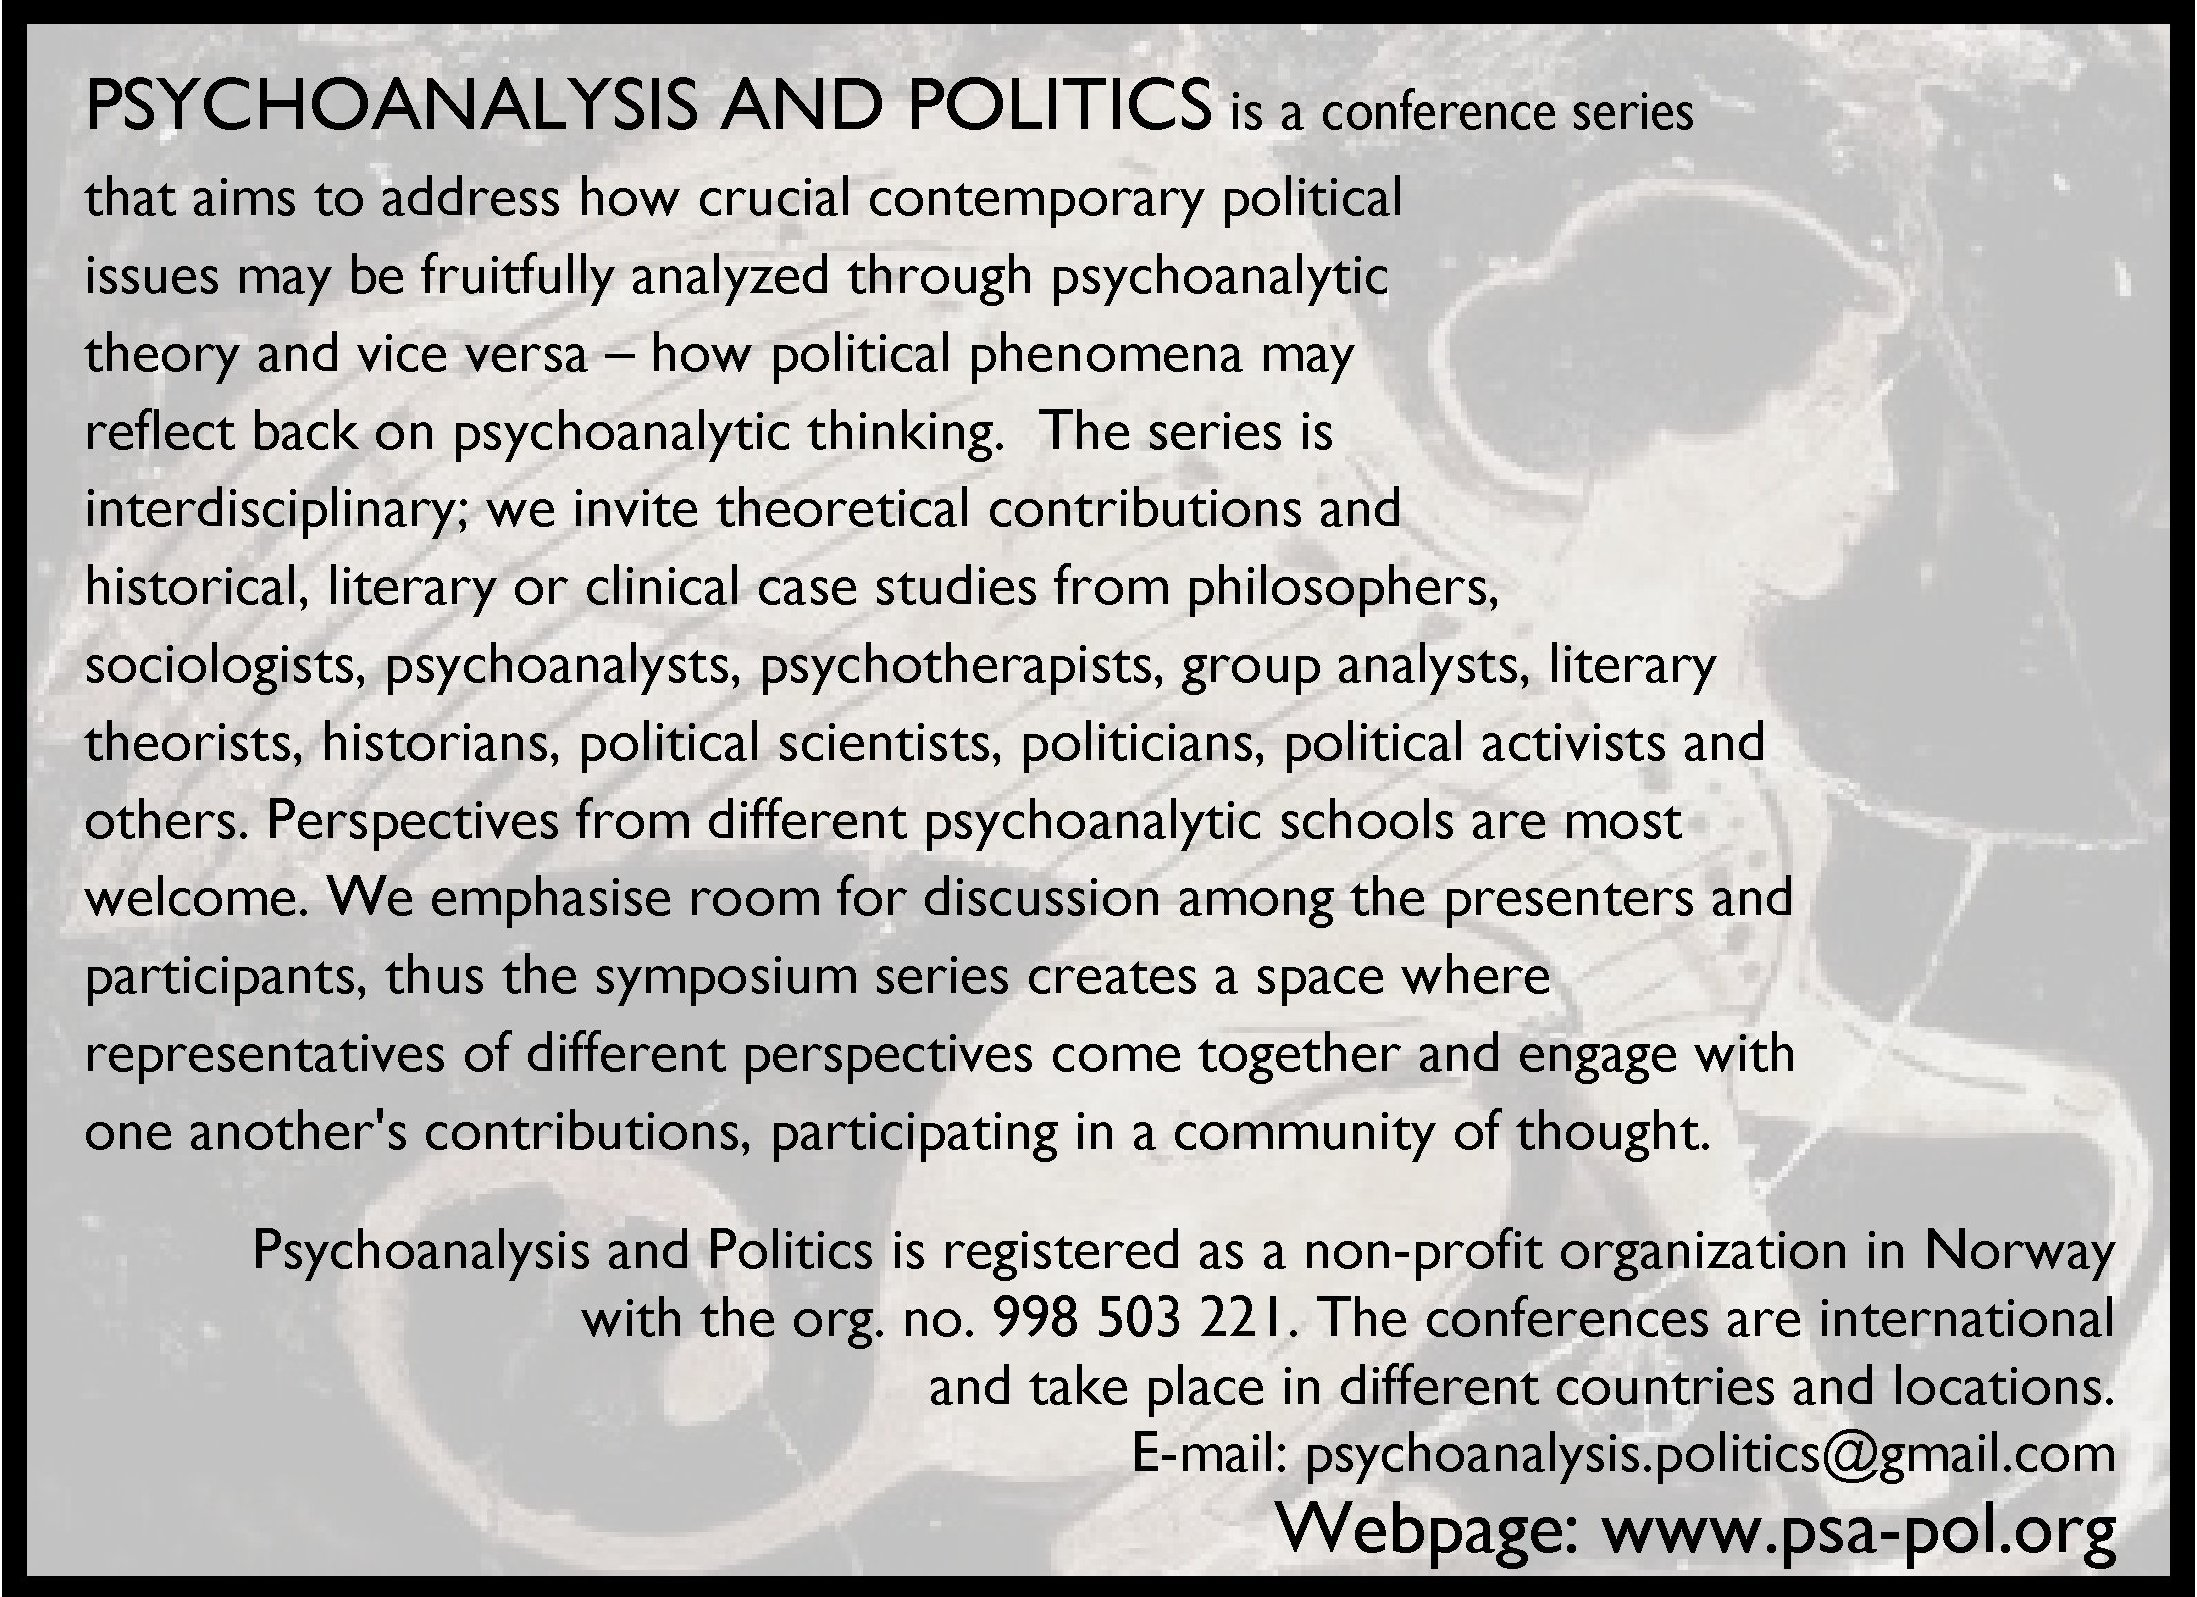 Card-Psychoanalysis and Politics-new3